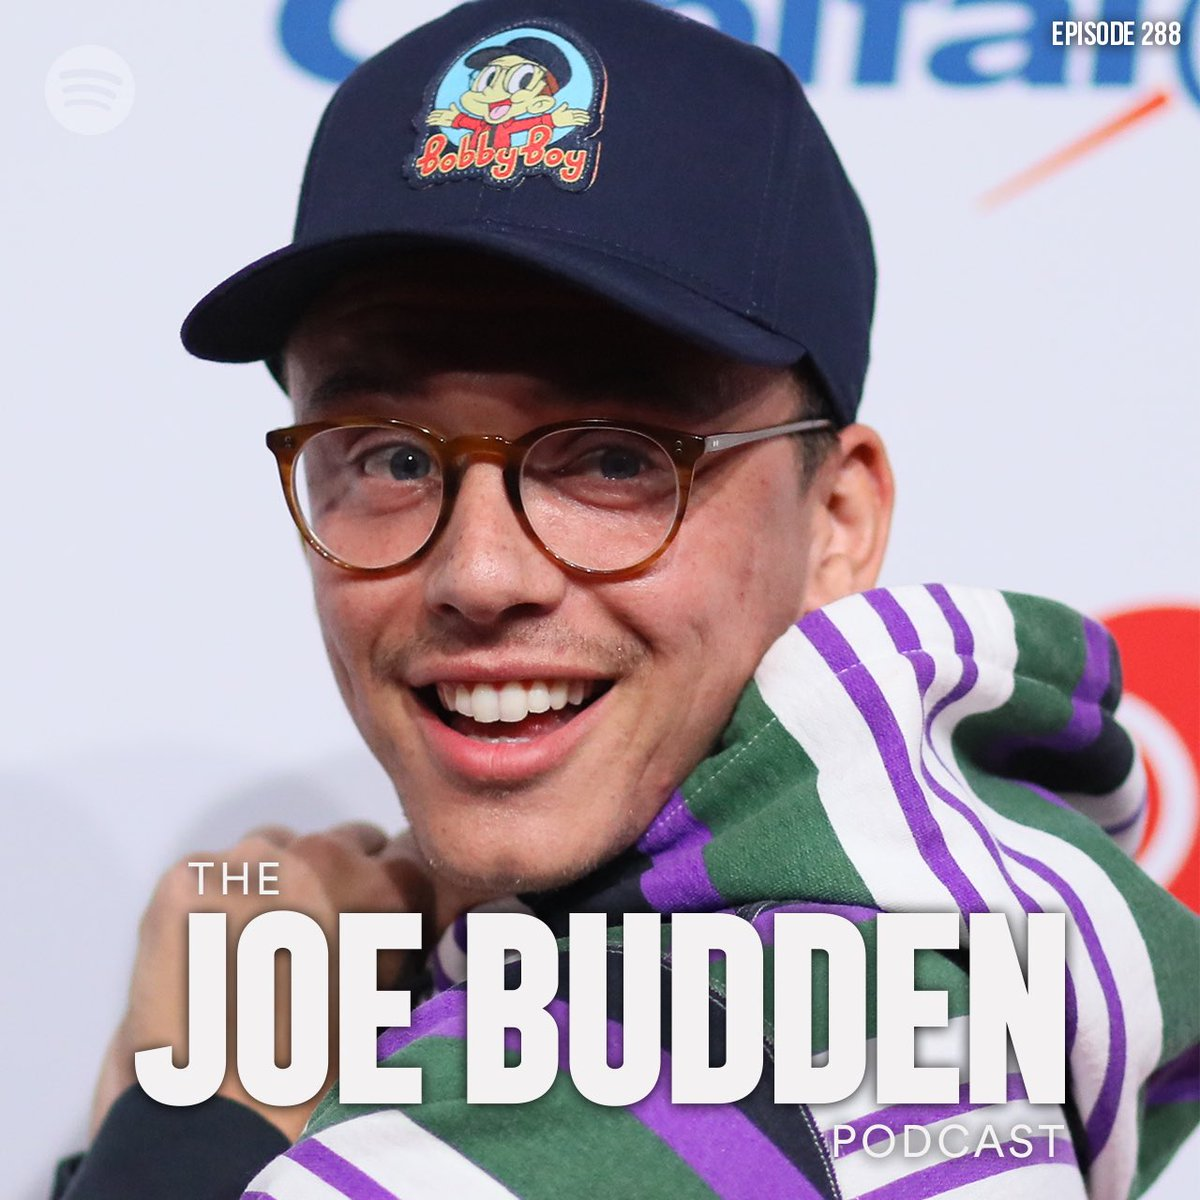 """The @JoeBudden Podcast Episode 288 """"Do You Gotta Boyfriend?"""" is available now! Stream exclusively on @Spotify LISTEN HERE 🎧: open.spotify.com/episode/3weYPV…"""